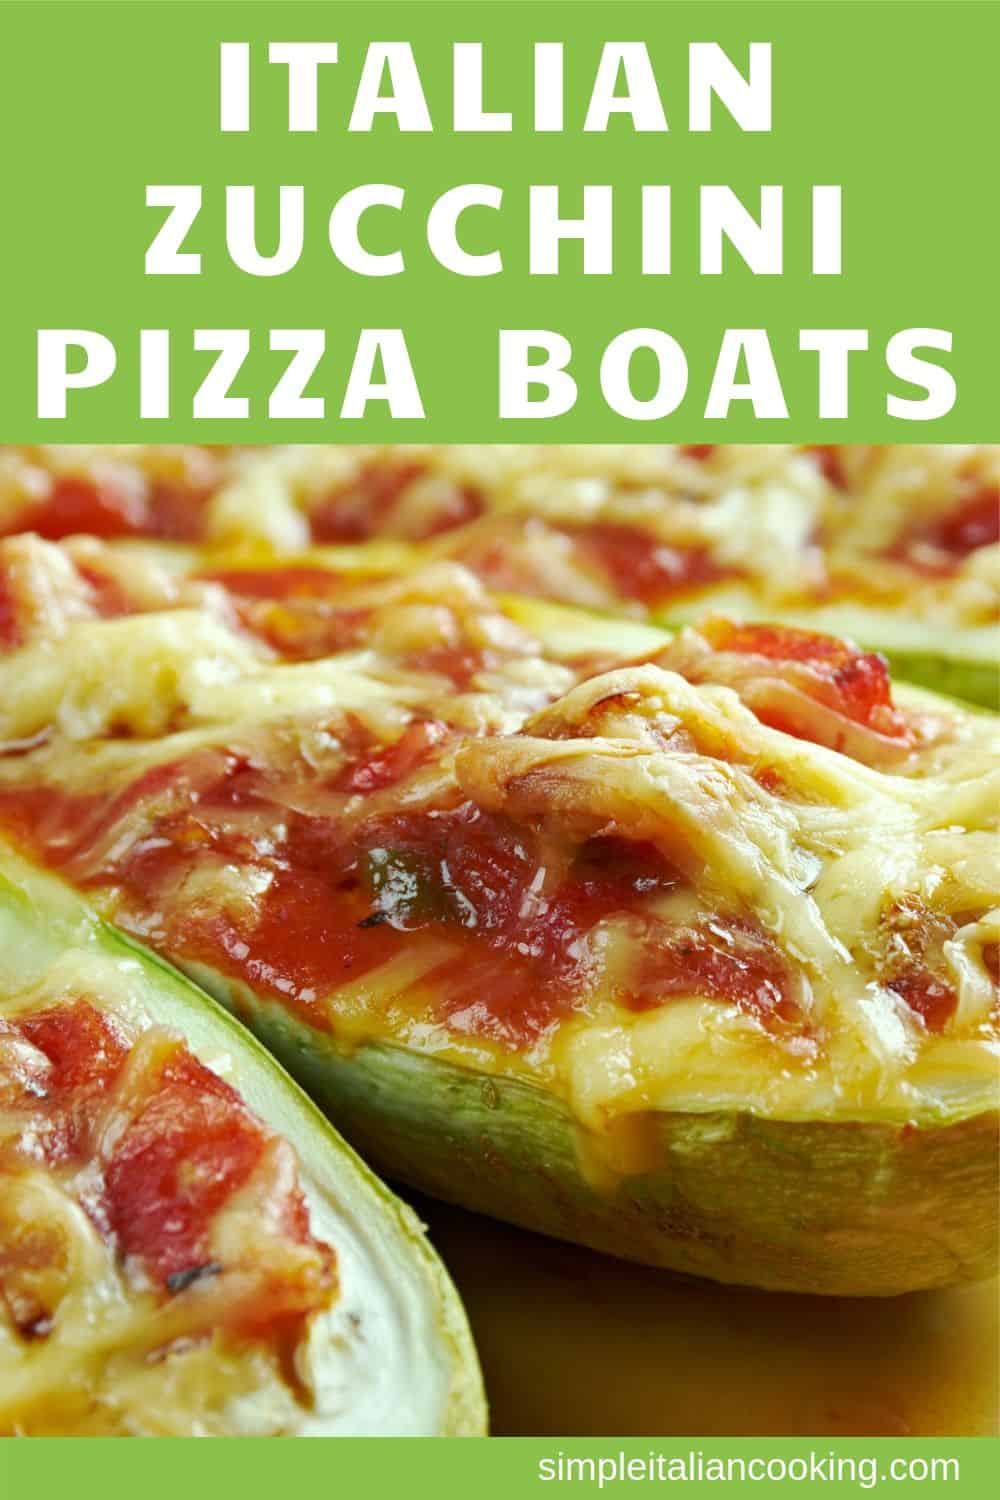 Zucchini pizza boats is an easy zucchini recipe for a side dish to dinner or lunch.  This Italian recipe uses minimal ingredients and tastes amazing!   Have fun with your zucchini! Enjoy!   #zucchini #zucchinirecipes #healthyzucchini #vegetarianrecipes #sidedishrecipes #italianzucchini #italiandinner